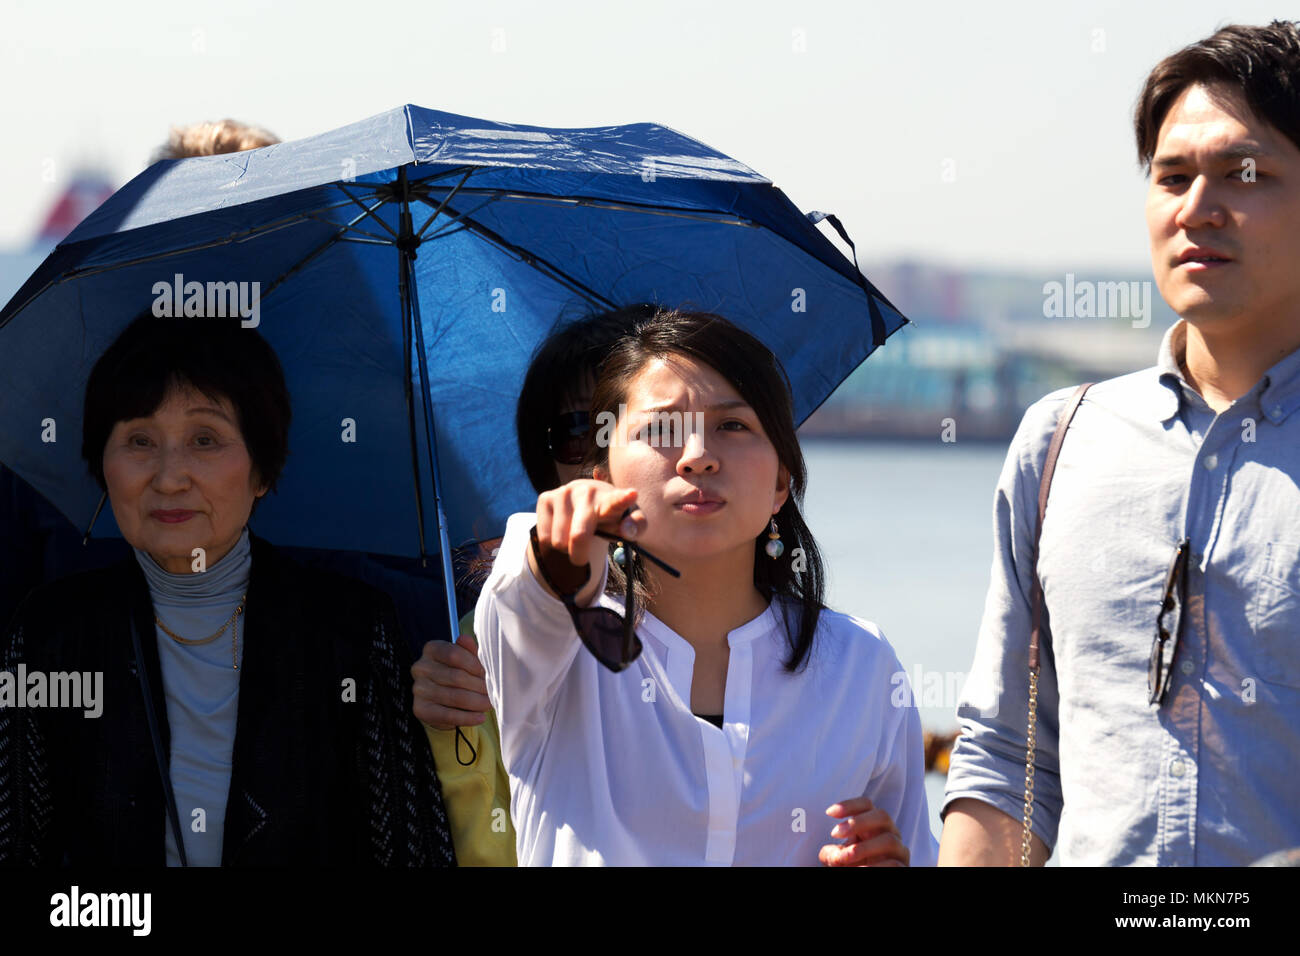 Woman appears to be pointing to the camera objecting to be photographed but is really pointing out a landmark to her family or friends. - Stock Image